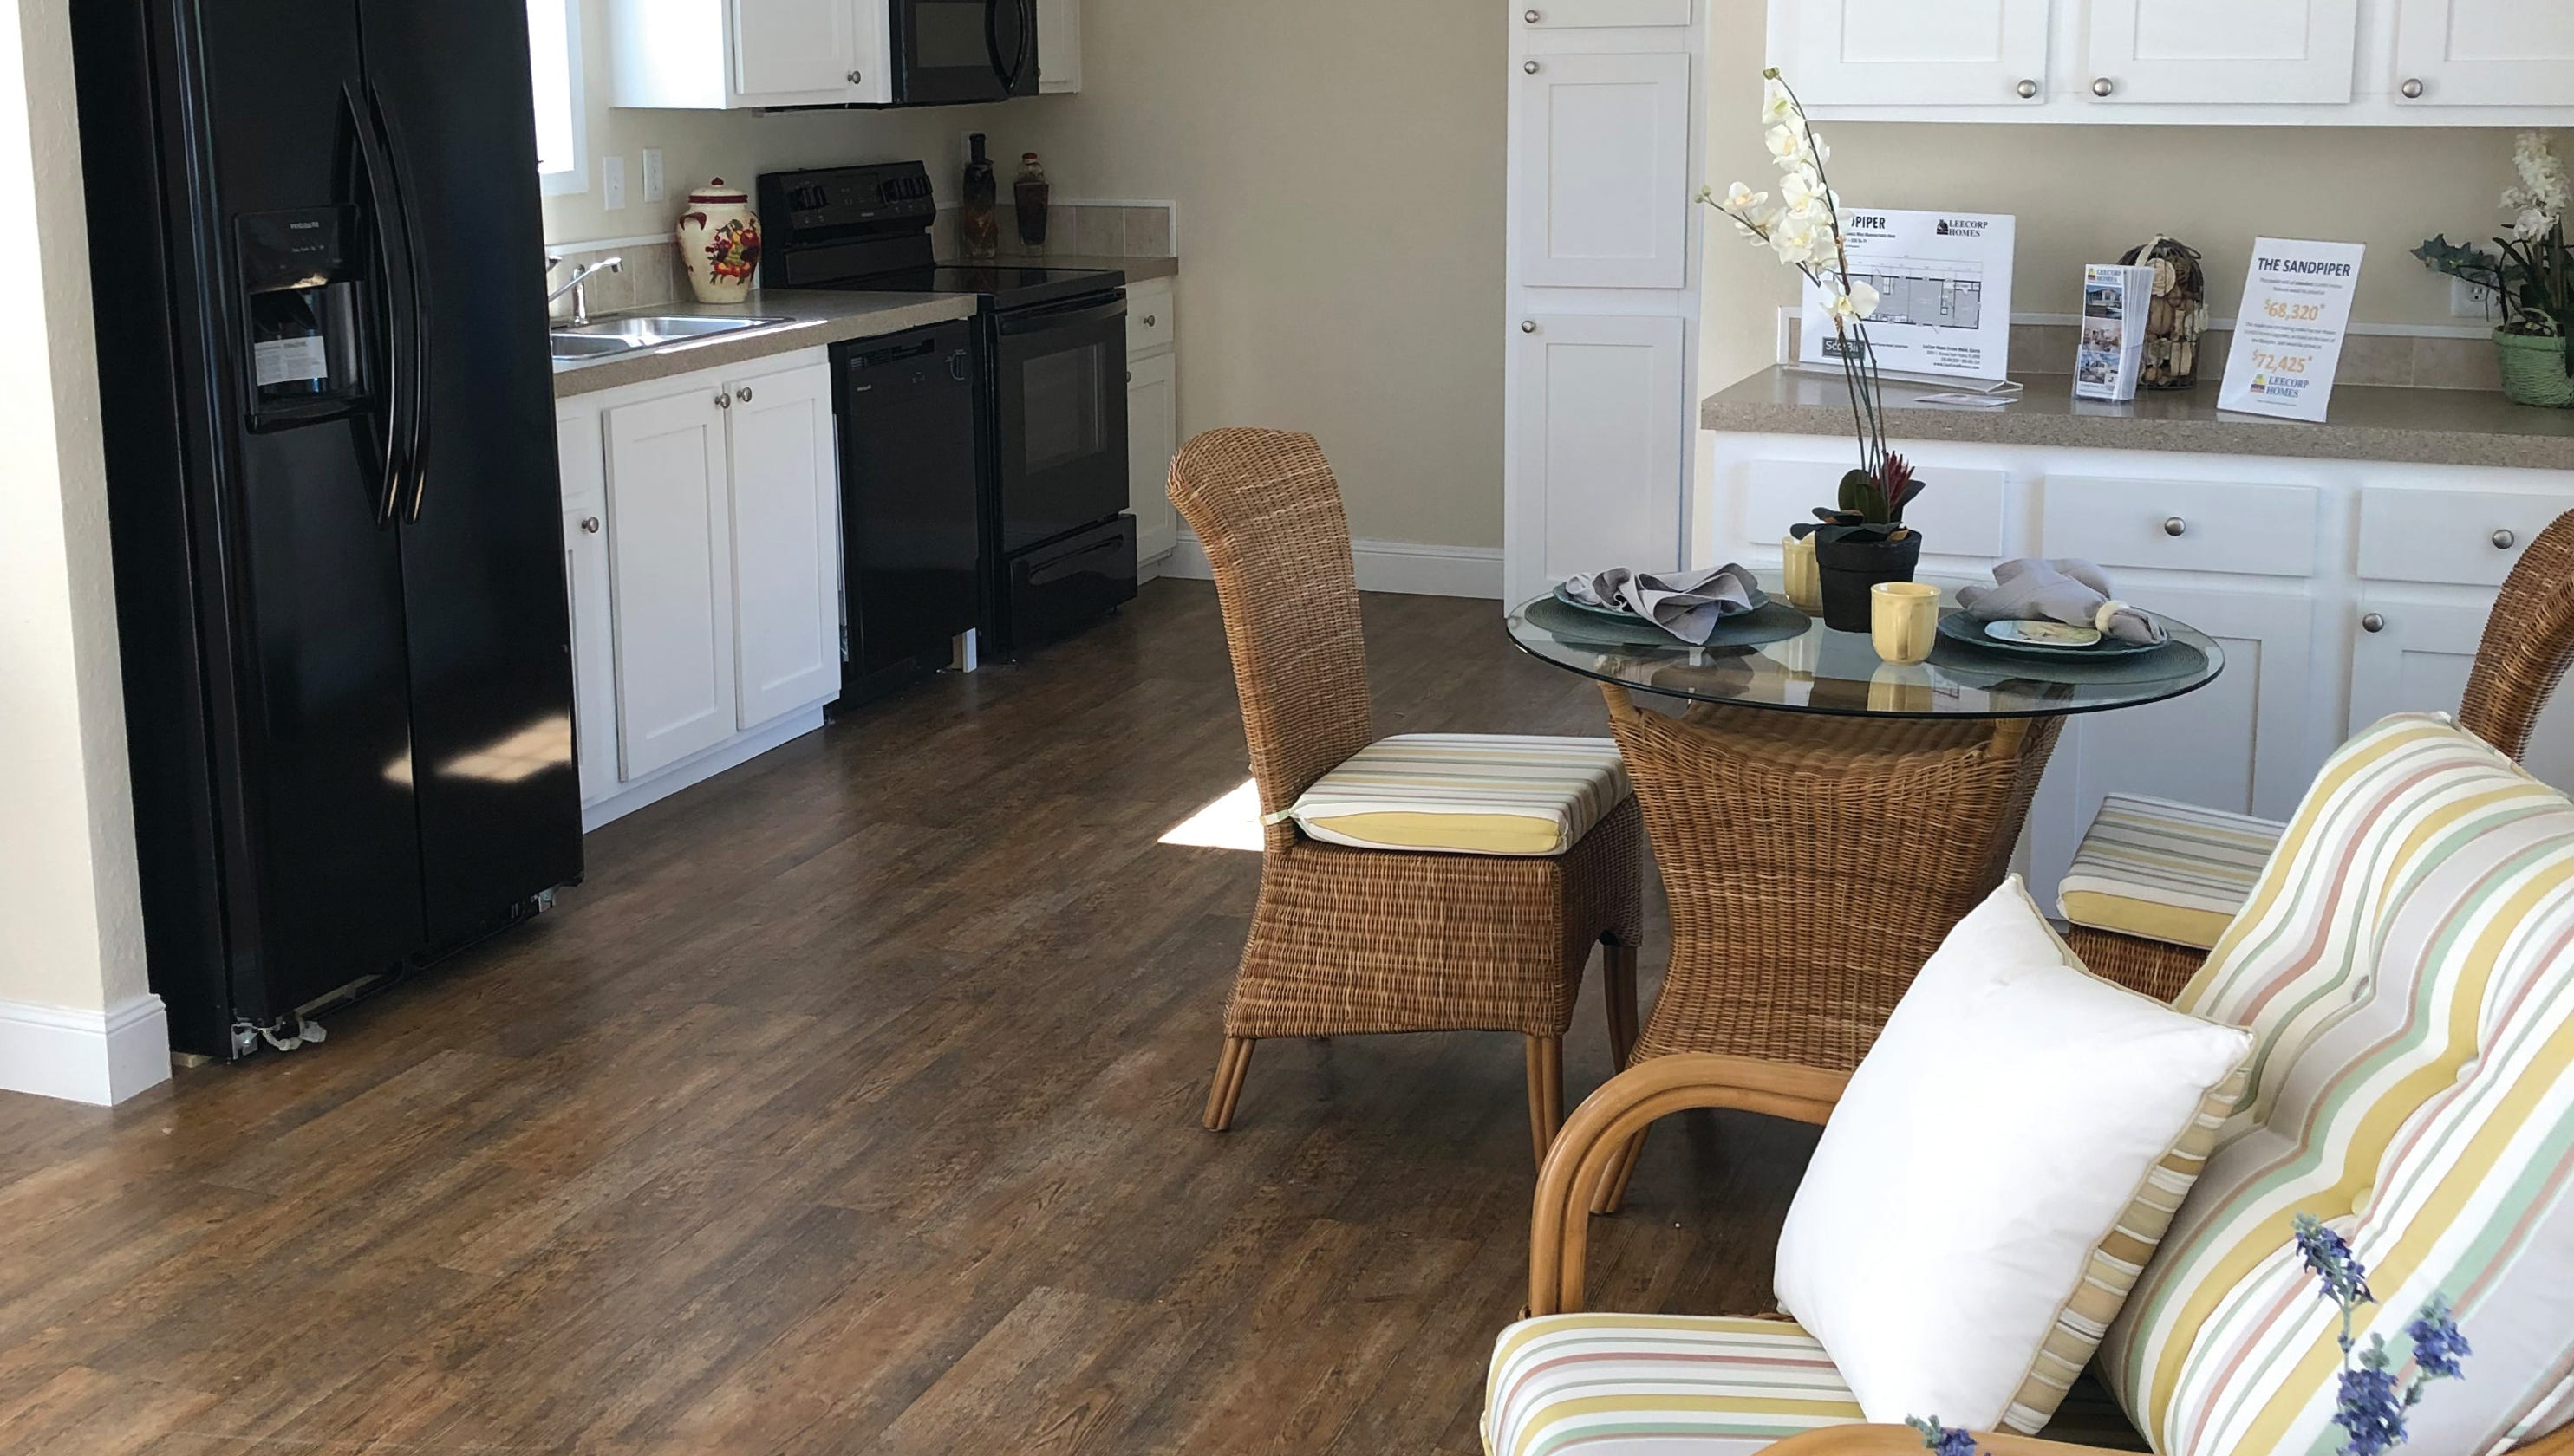 LeeCorp Homes announces delivery of Sandpiper model